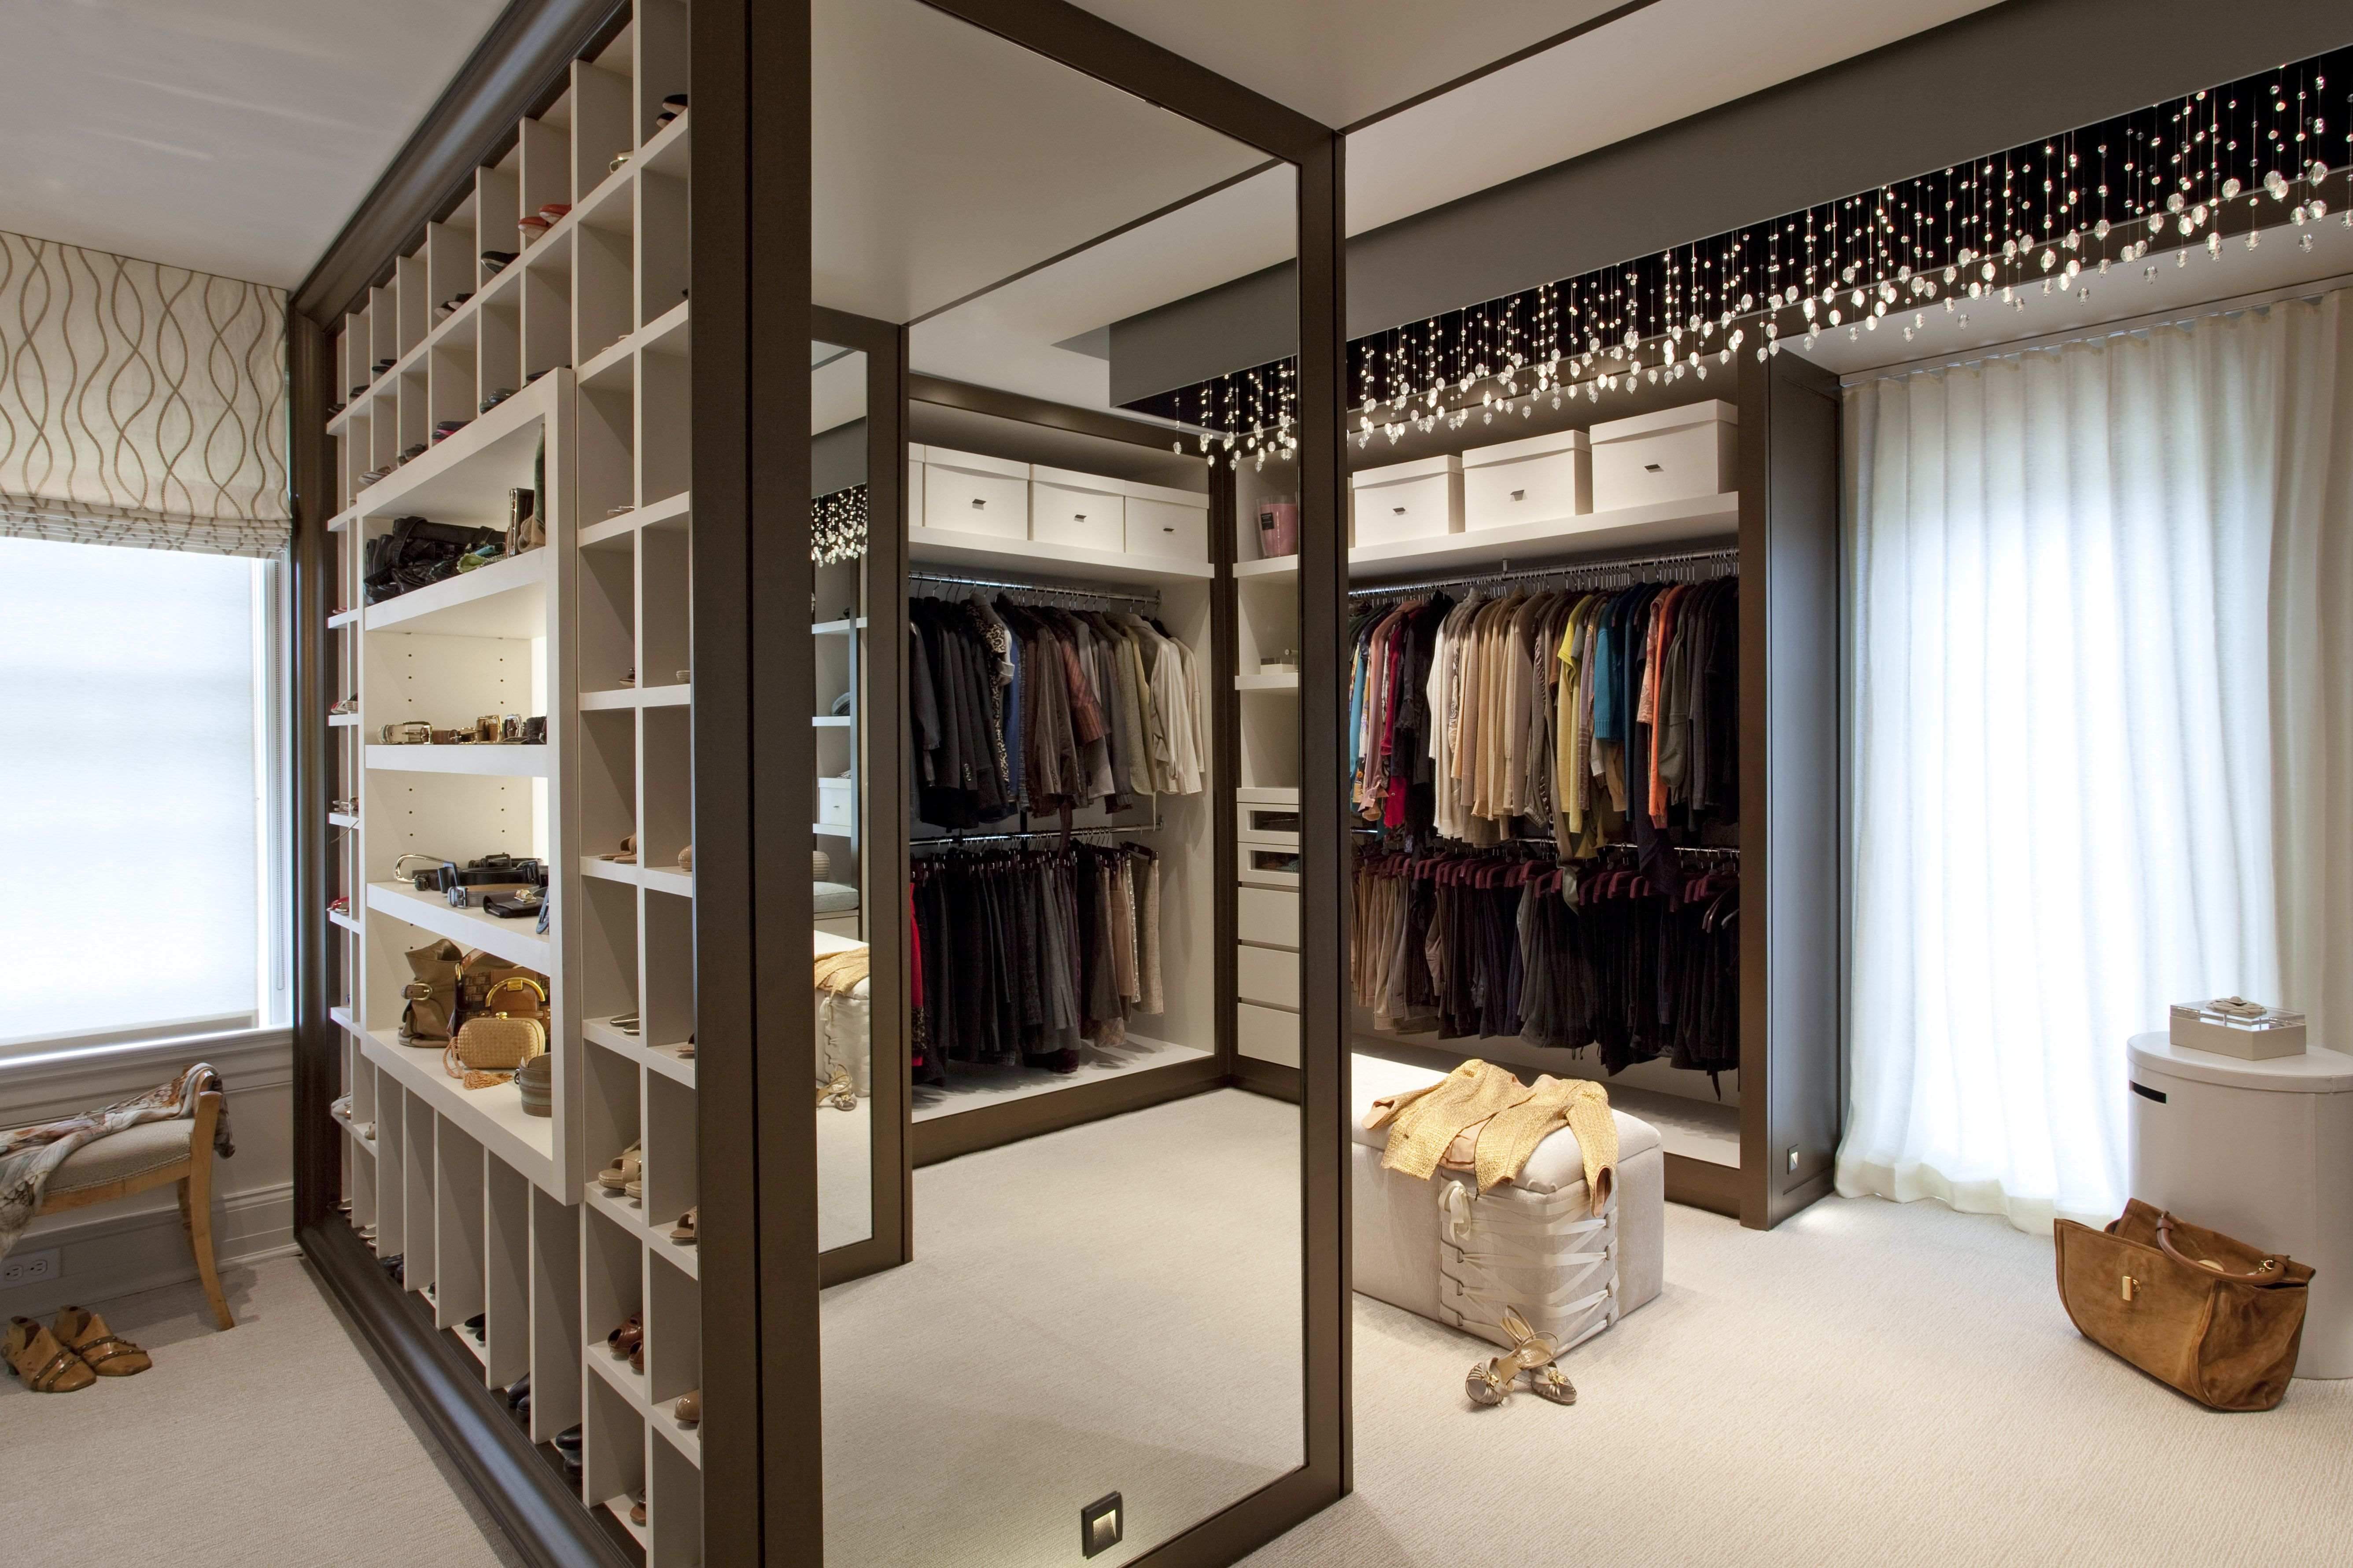 20 Great Walk In Closet Ideas Stunning Large Custom Closet Designs